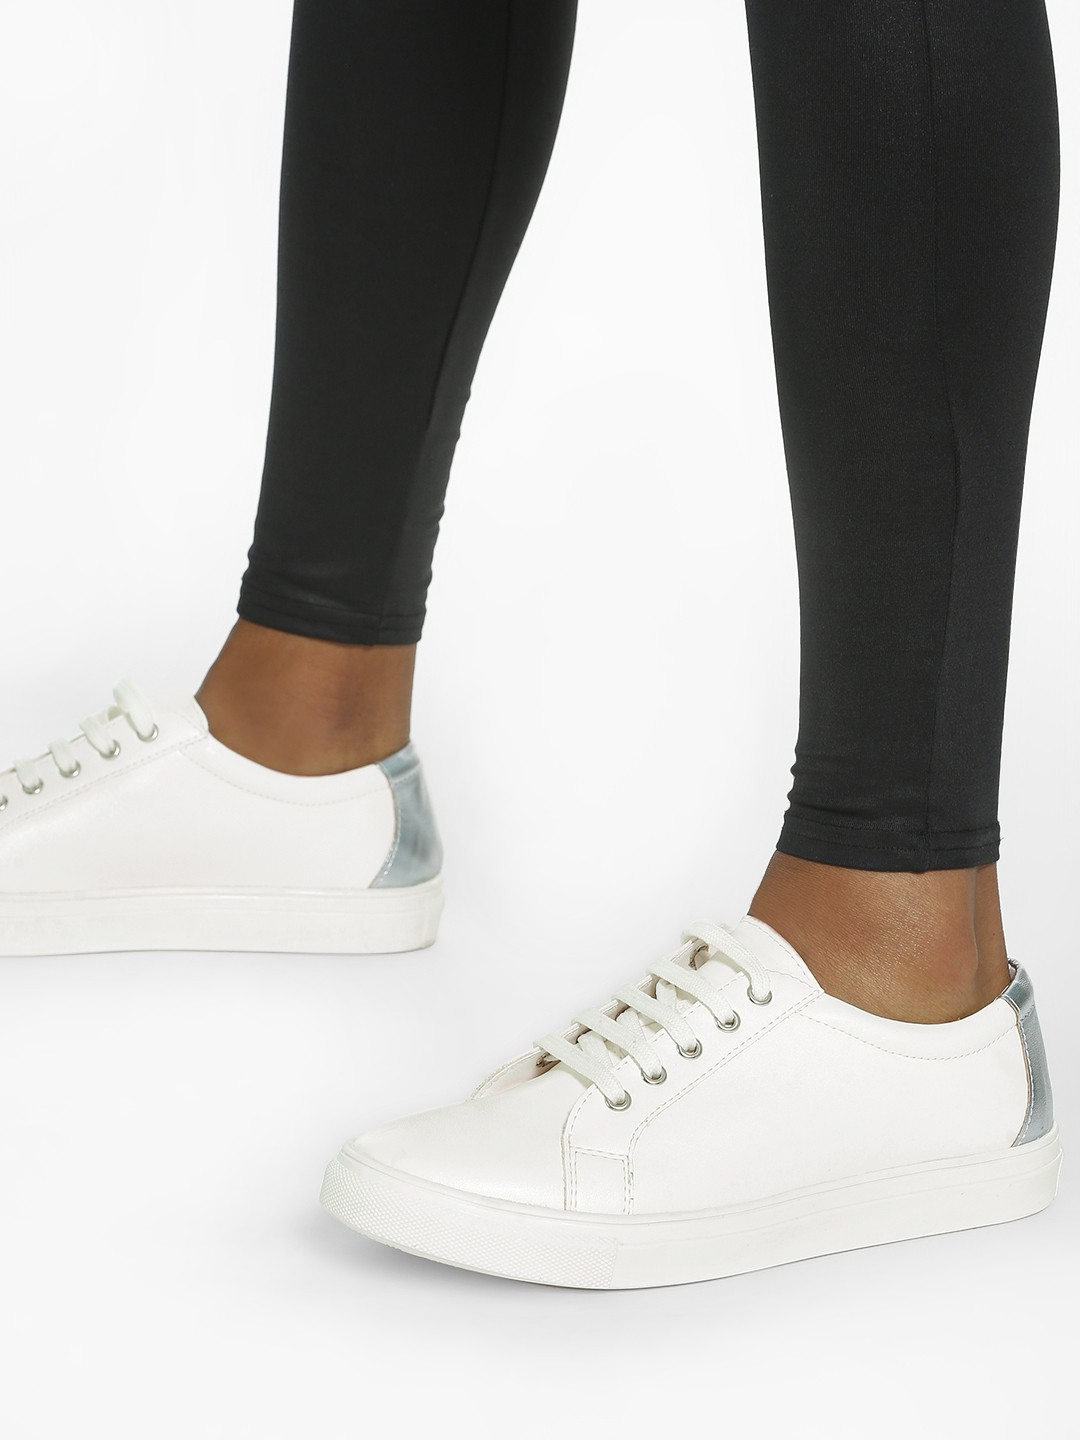 ADORLY White Metallic Tab Lace-Up Sneakers 1